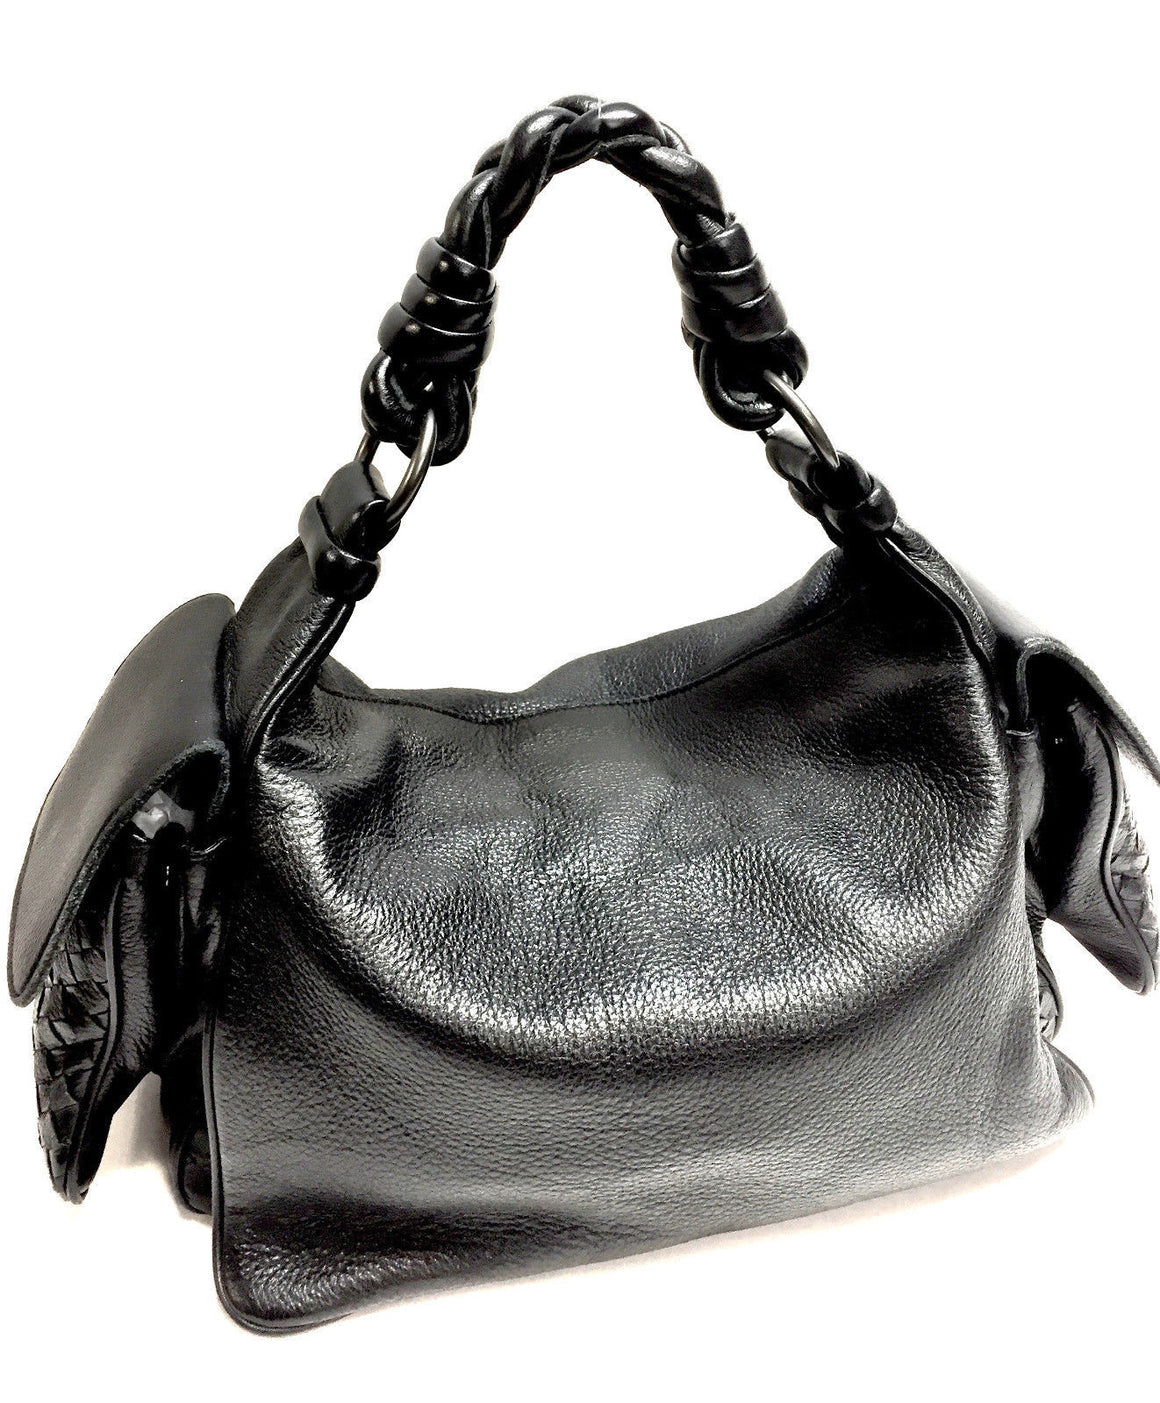 bisbiz.com BOTTEGA VENETA  Black Caviar Leather Intreciatto Pockets Braided Strap  Hobo Shoulder Hand Bag - Bis Luxury Resale